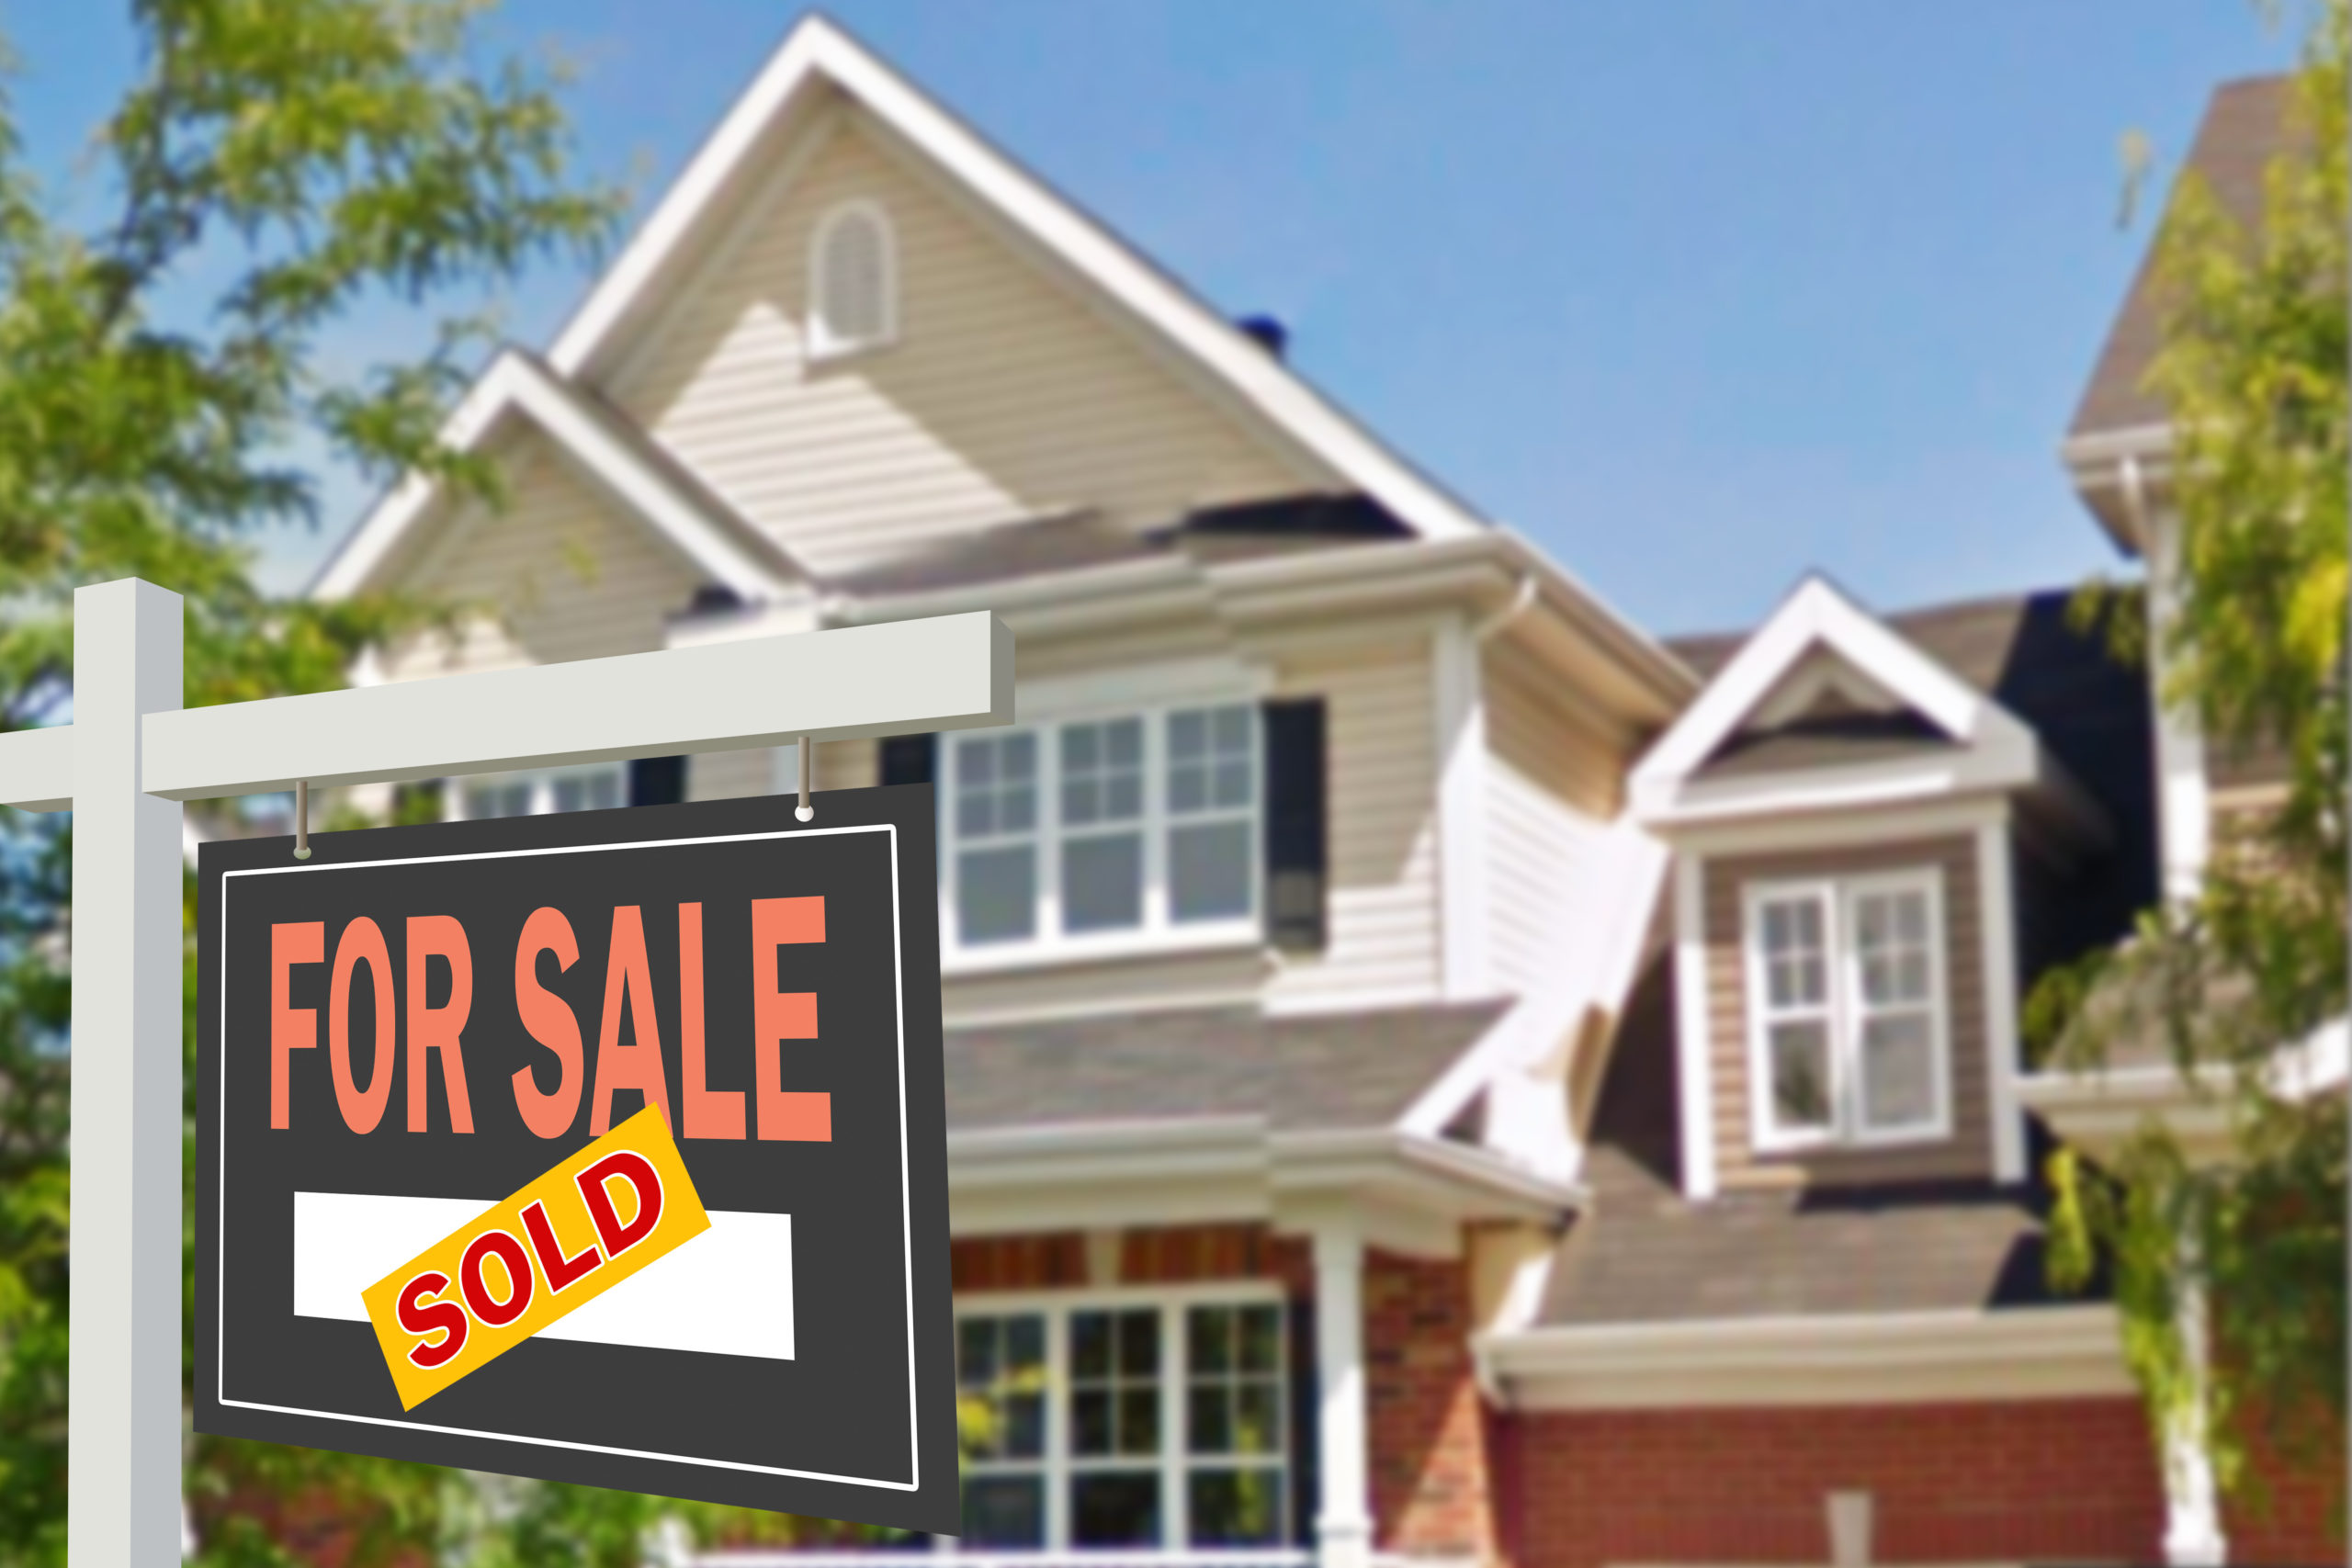 Home Sales During the Pandemic are Strong, and Buying Will Only Get Easier